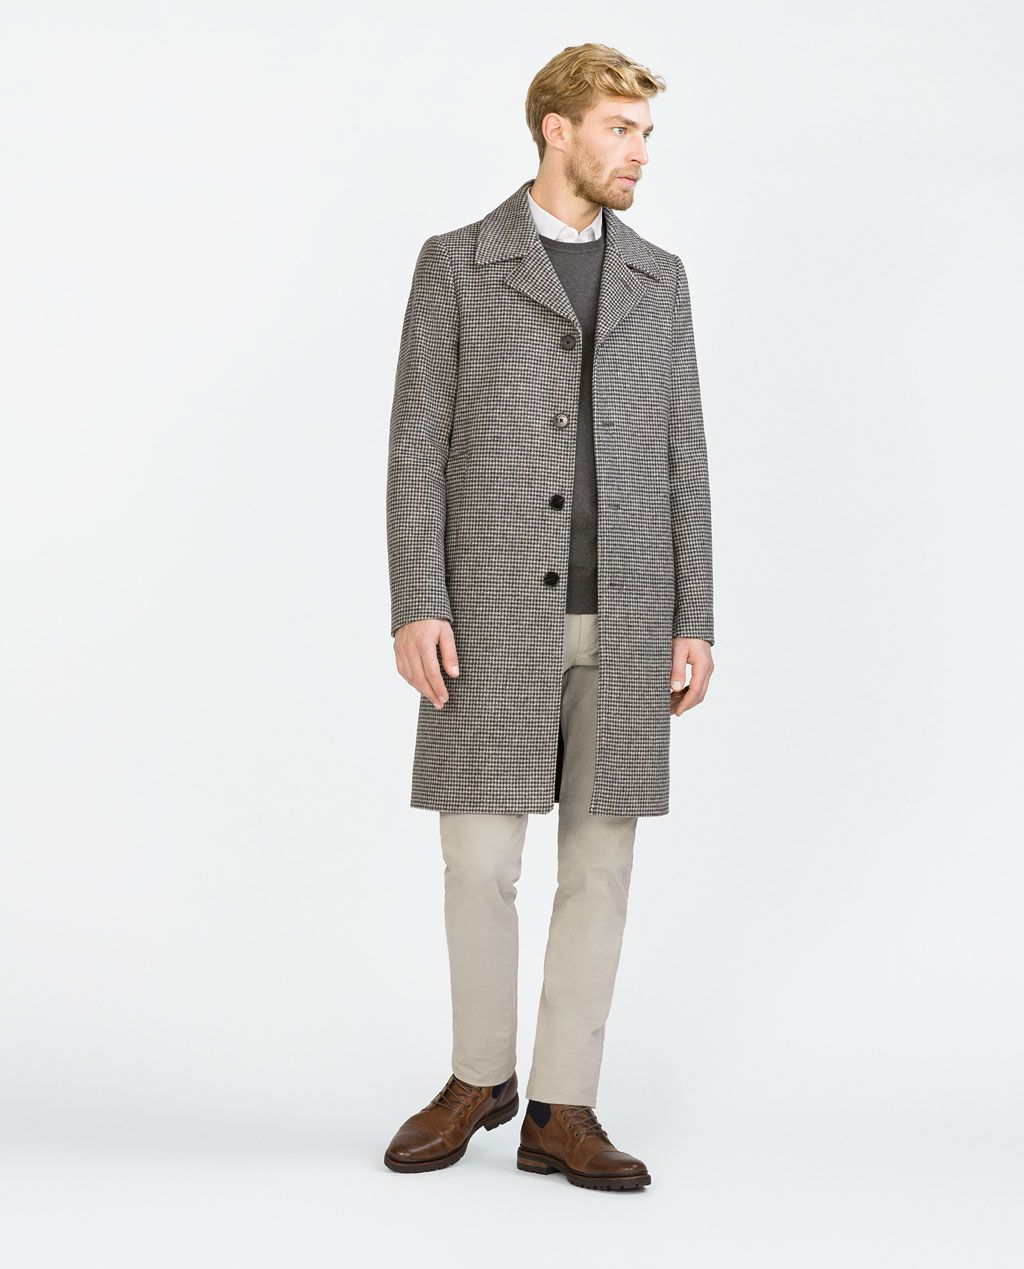 98a77bb0 ZARA - SALE - HOUNDSTOOTH COAT | Mens fashion and stuff ...